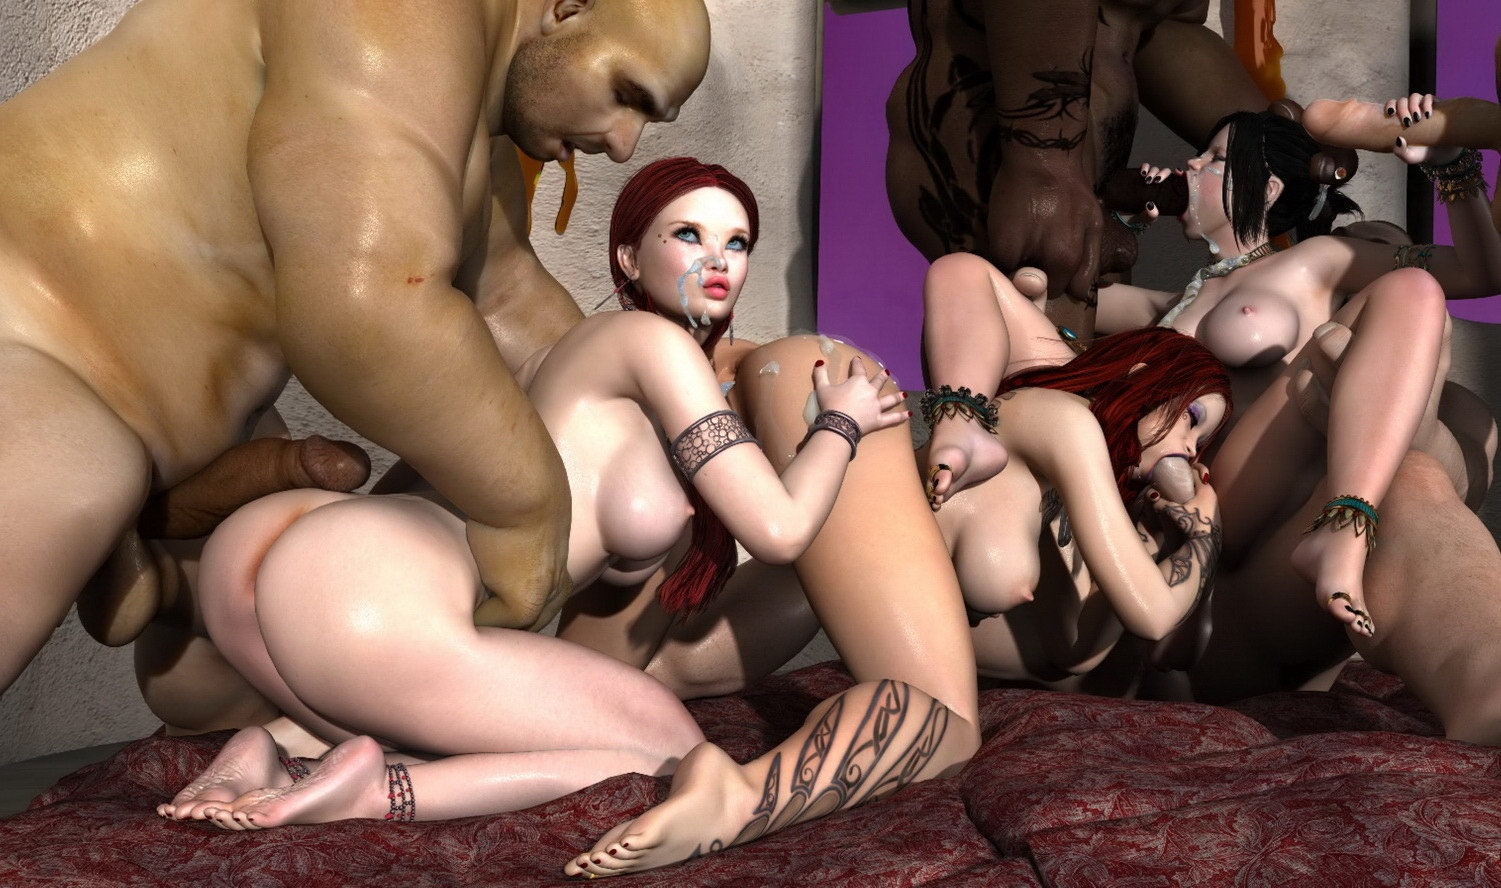 Orcs porn video porn photo